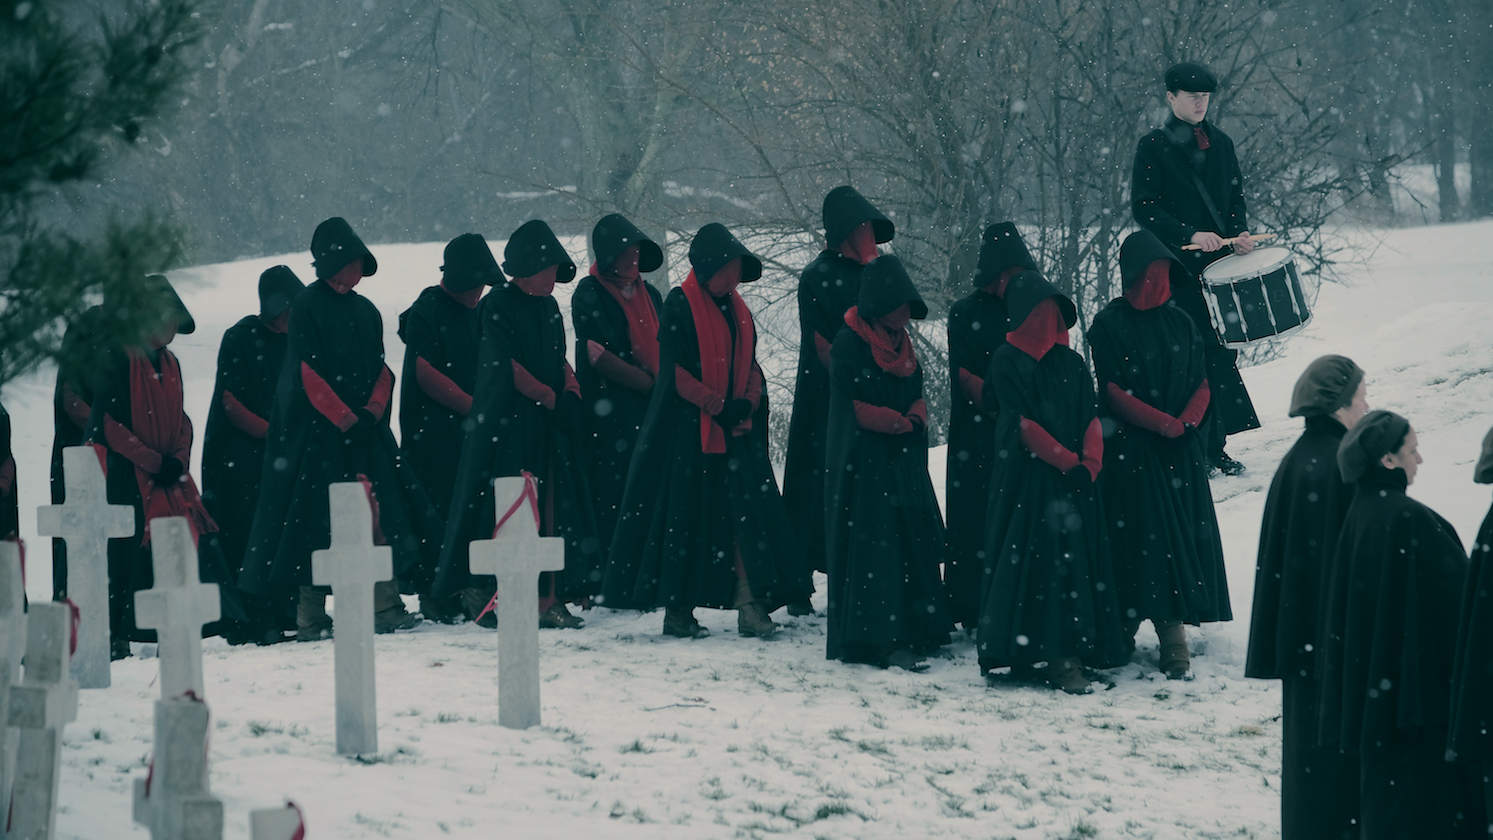 Sur les plannings US : The Handmaid's Tale saison 2, Fear The Walking Dead s4, Everything Sucks!, Heathers, Marvel's Cloak & Dagger, The Bold Type s2…